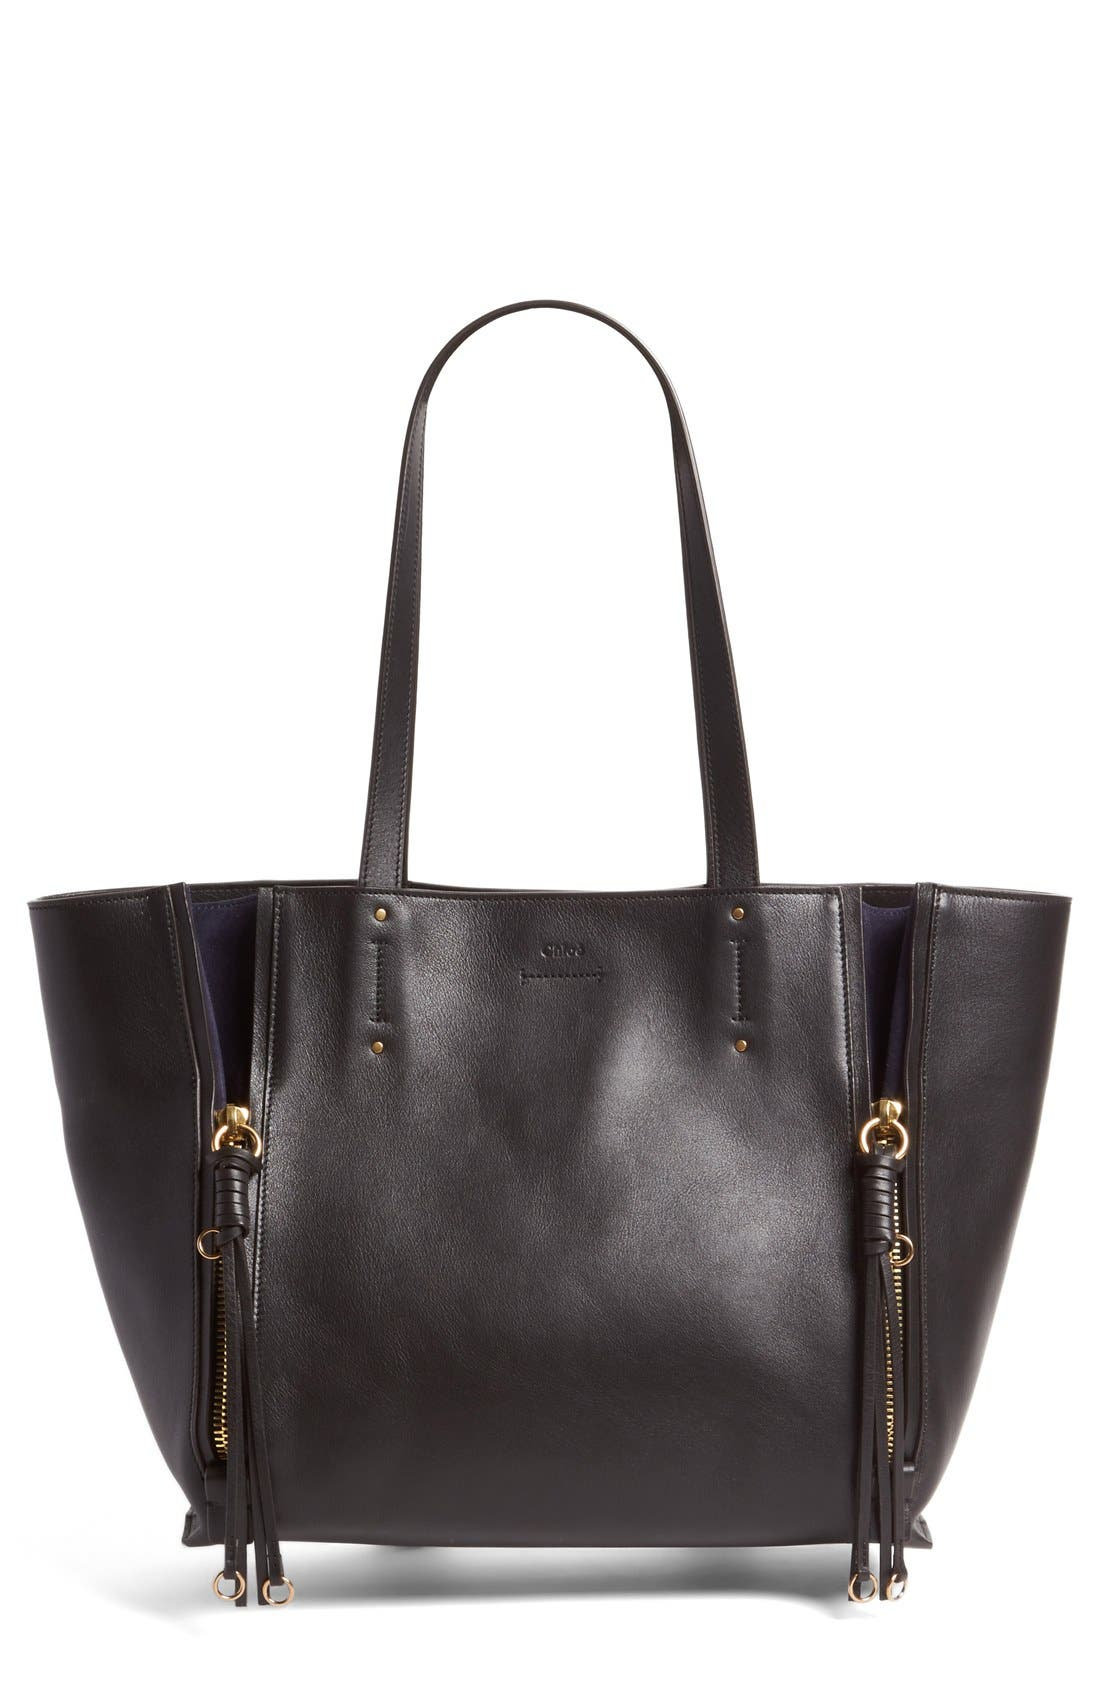 Medium Milo Calfskin Leather Tote,                             Main thumbnail 1, color,                             BLACK